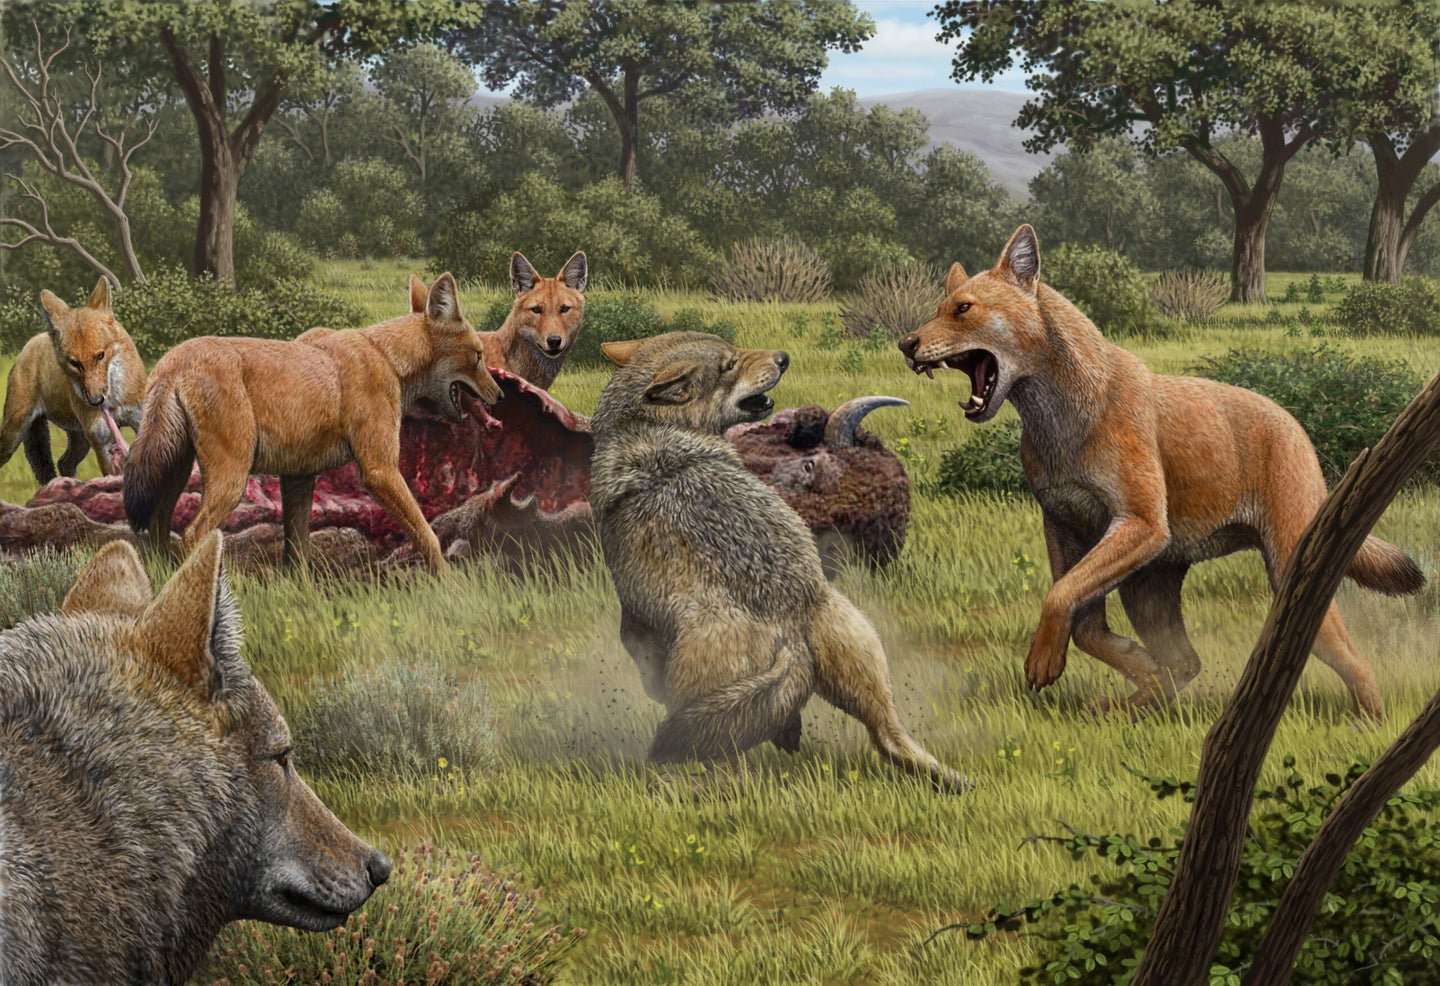 Dire wolves attacking prey and fighting off gray wolves.